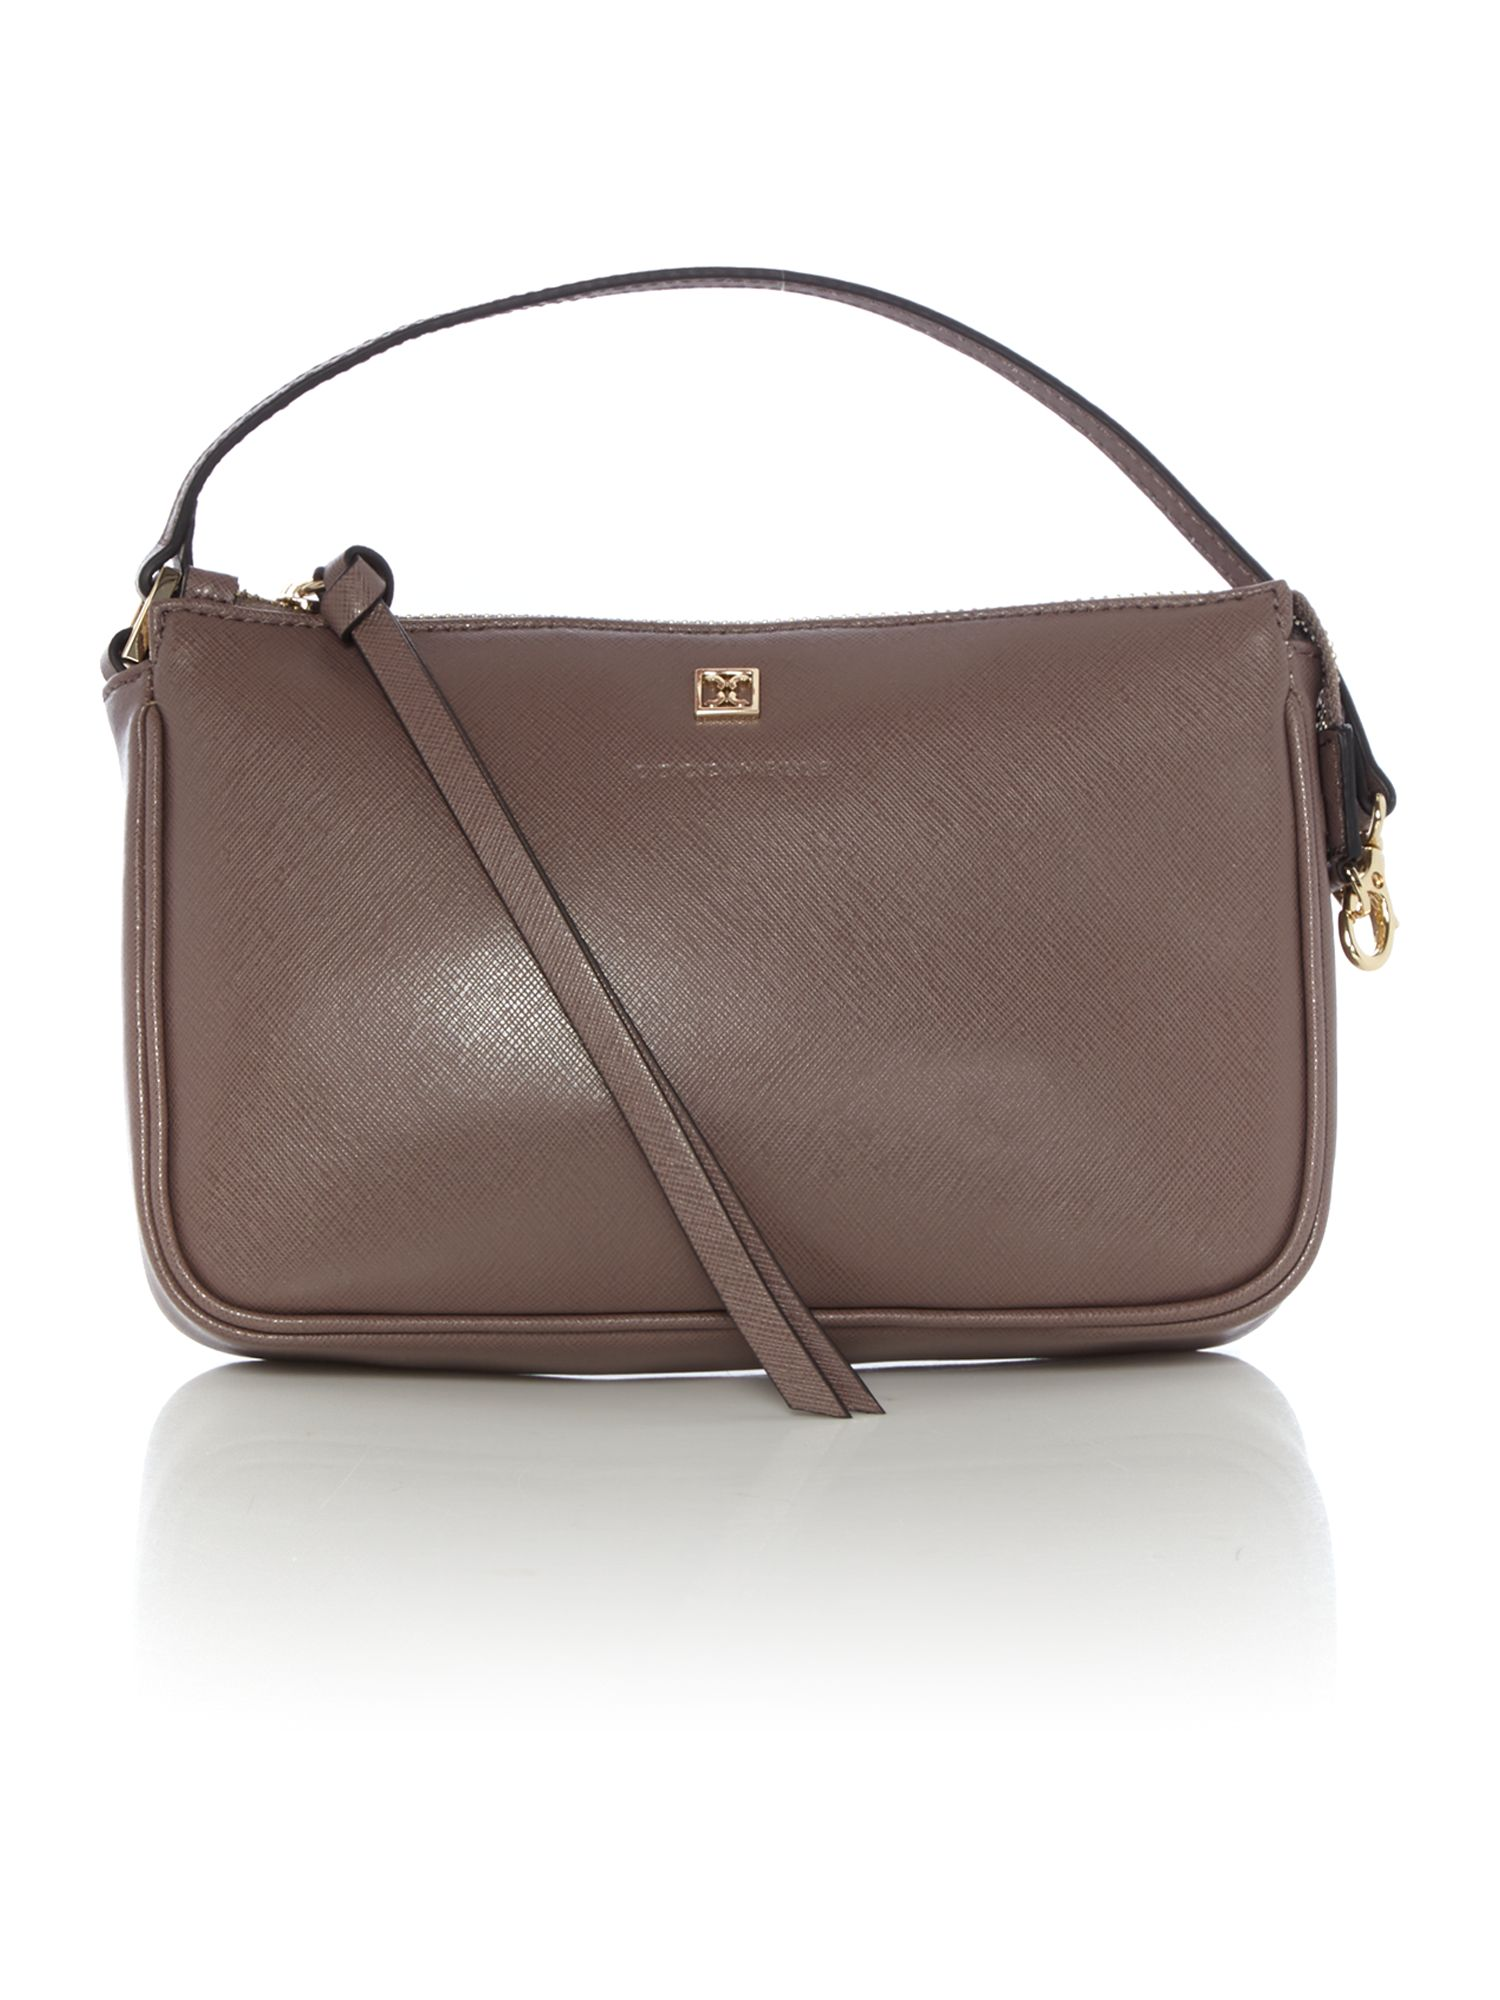 Coccinelle Coccinelle Taupe cross body pouch, Taupe